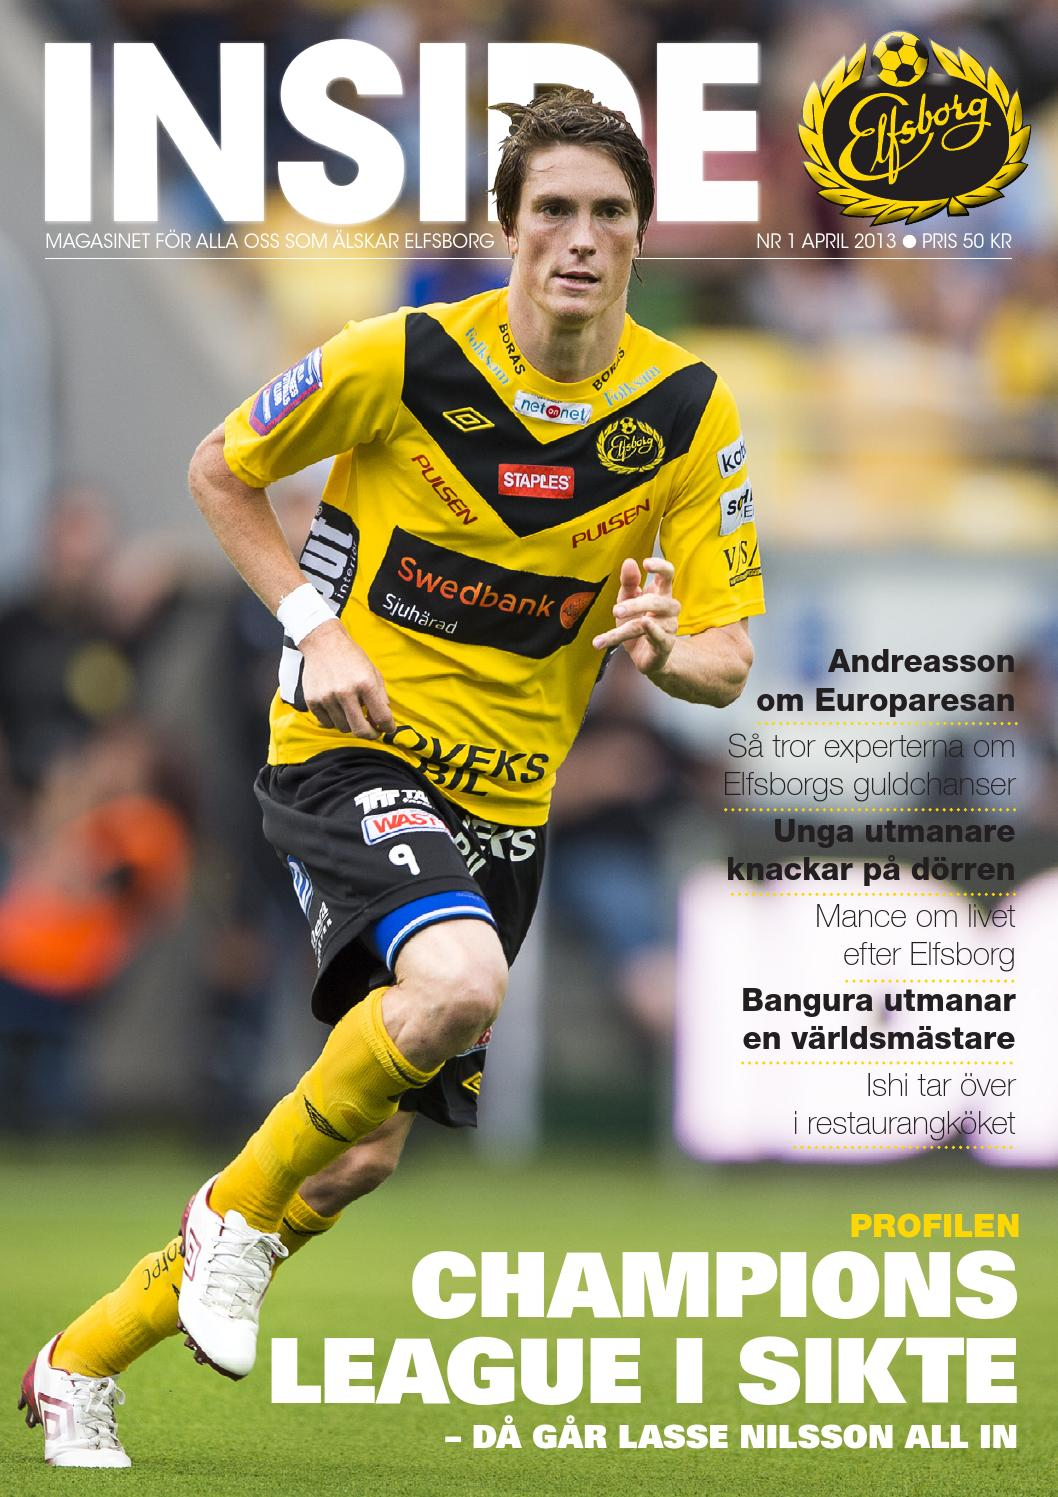 Inside Elfsborg nr 1 2013 by Break a Story Communication AB - issuu fb602b08b84a6